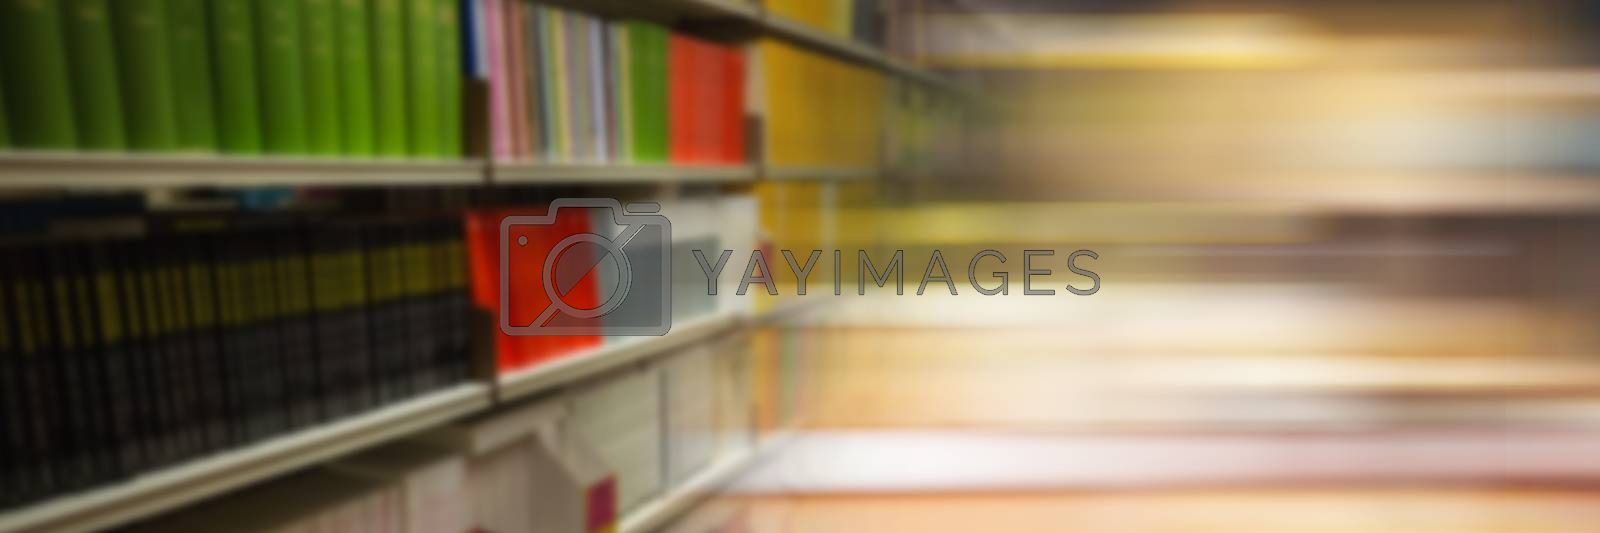 Digital composite of Education library with colorful motion effect transition